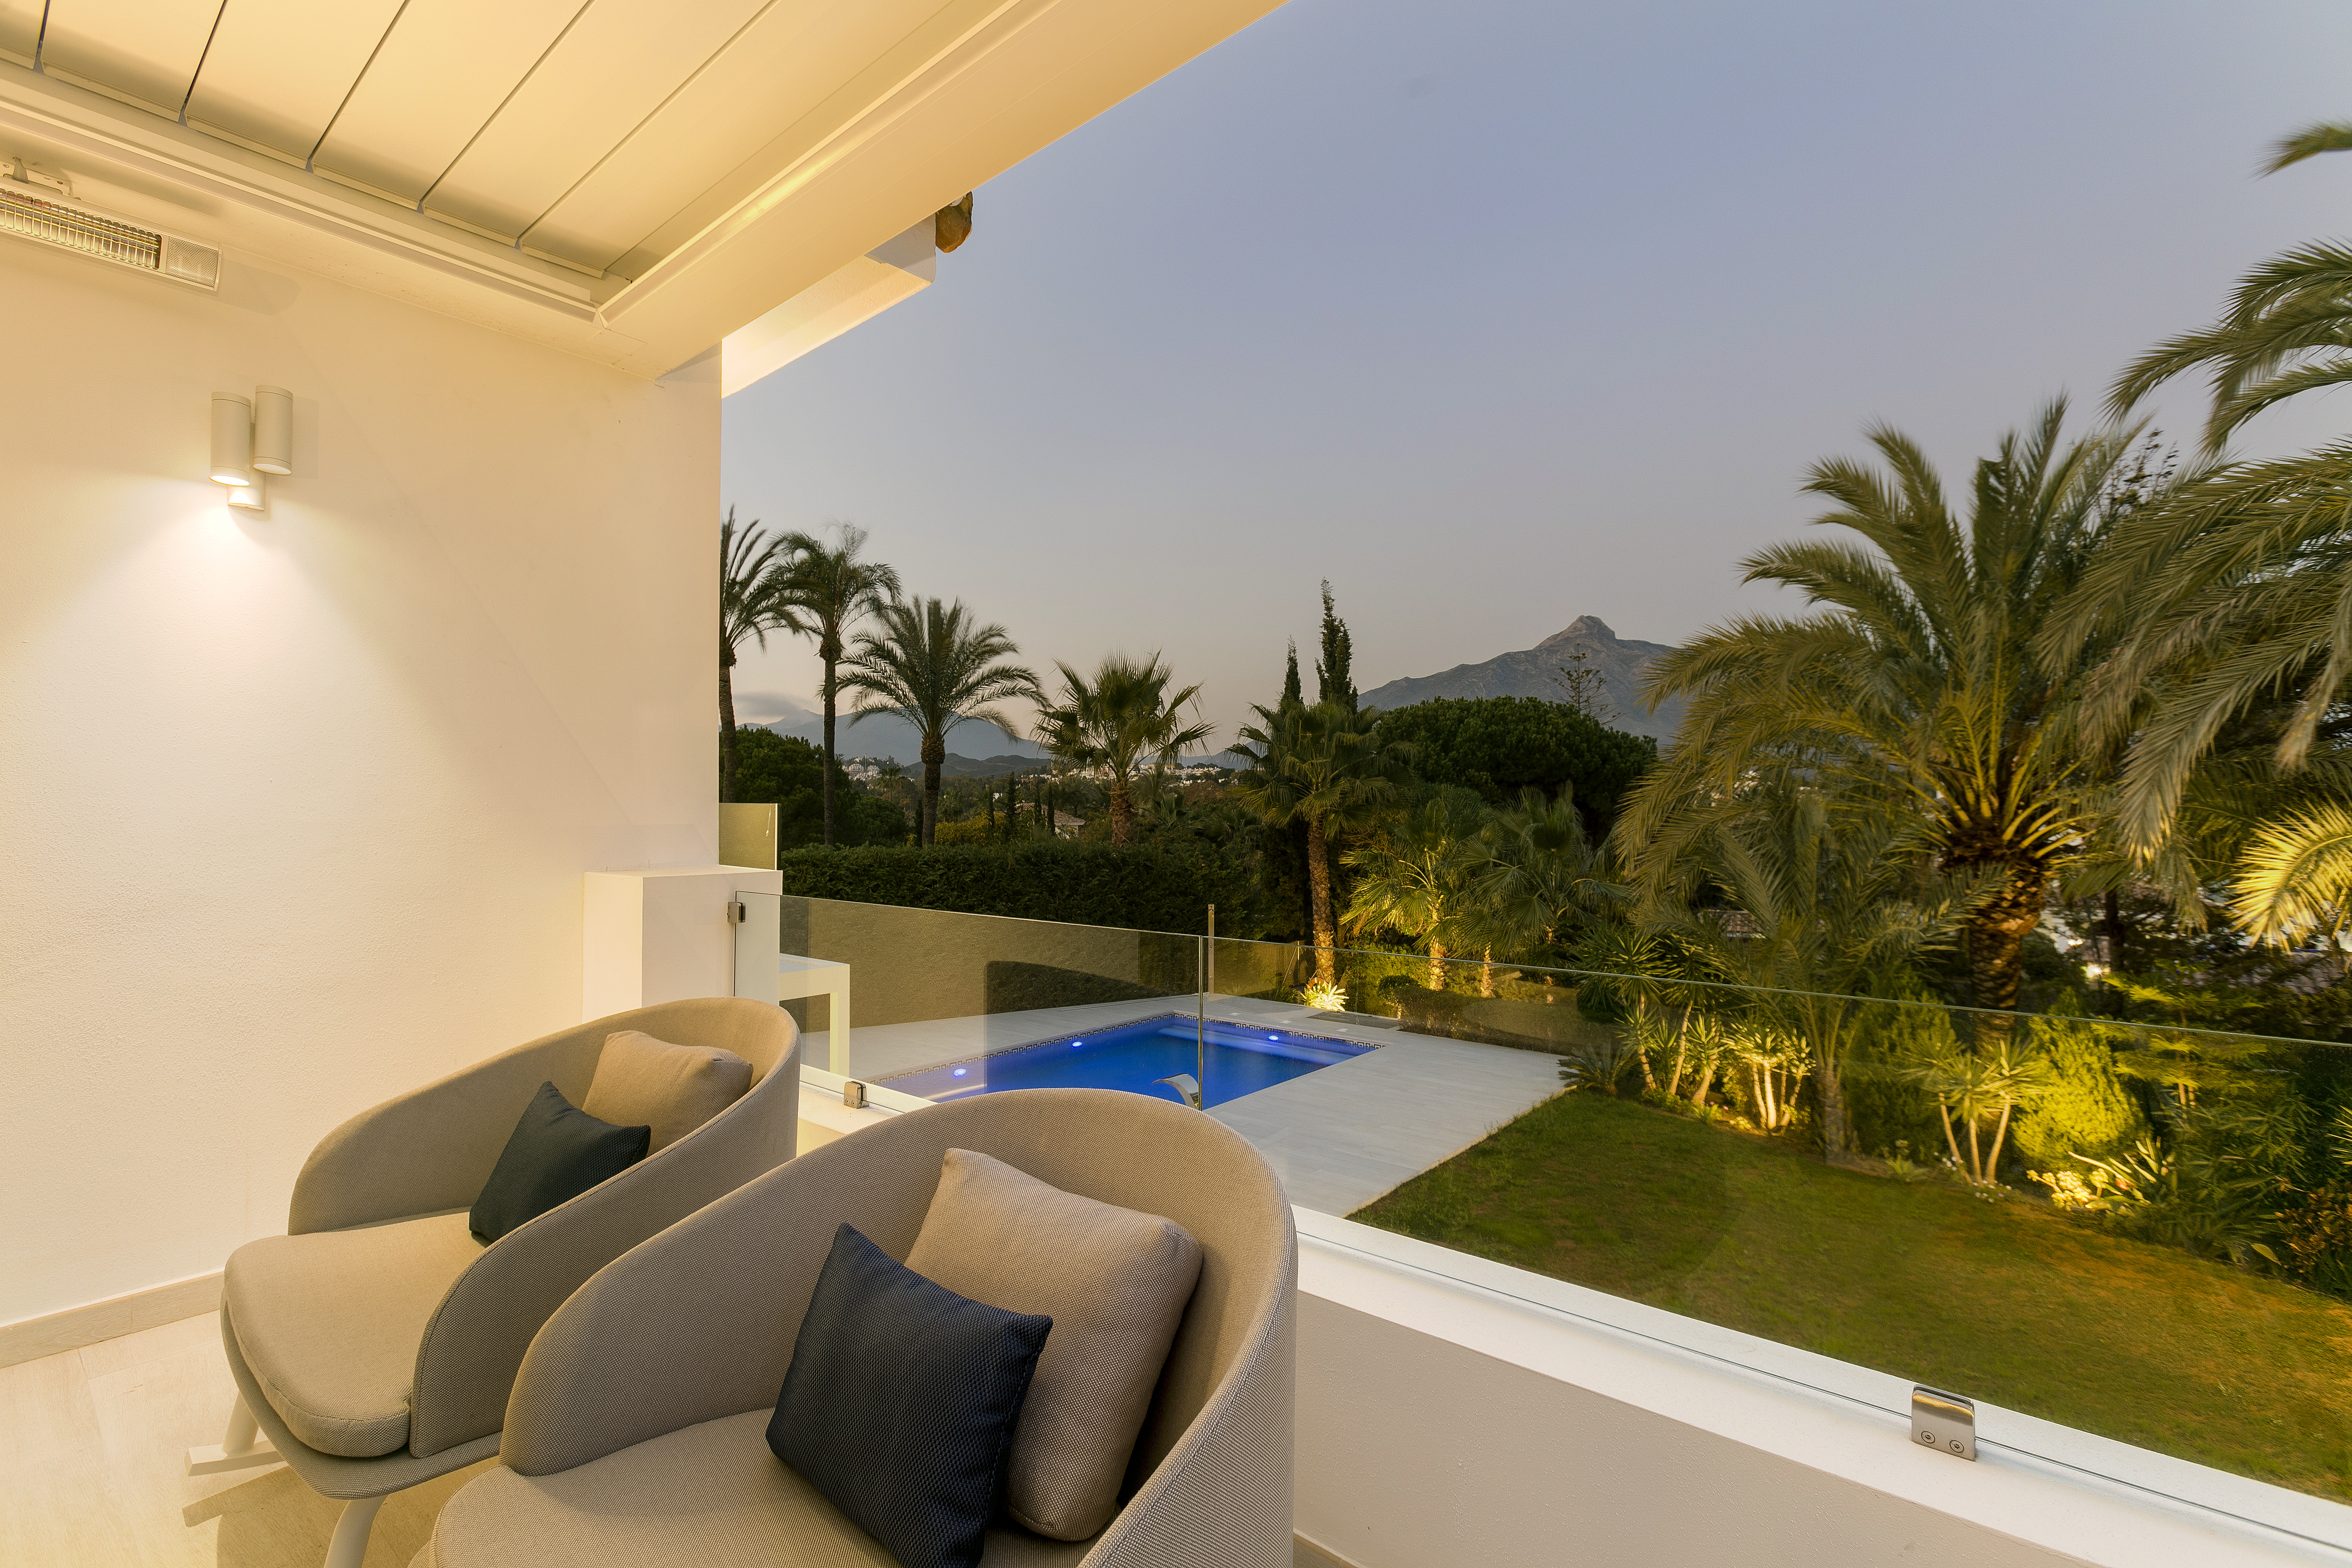 Luxury Holiday Home terrace views